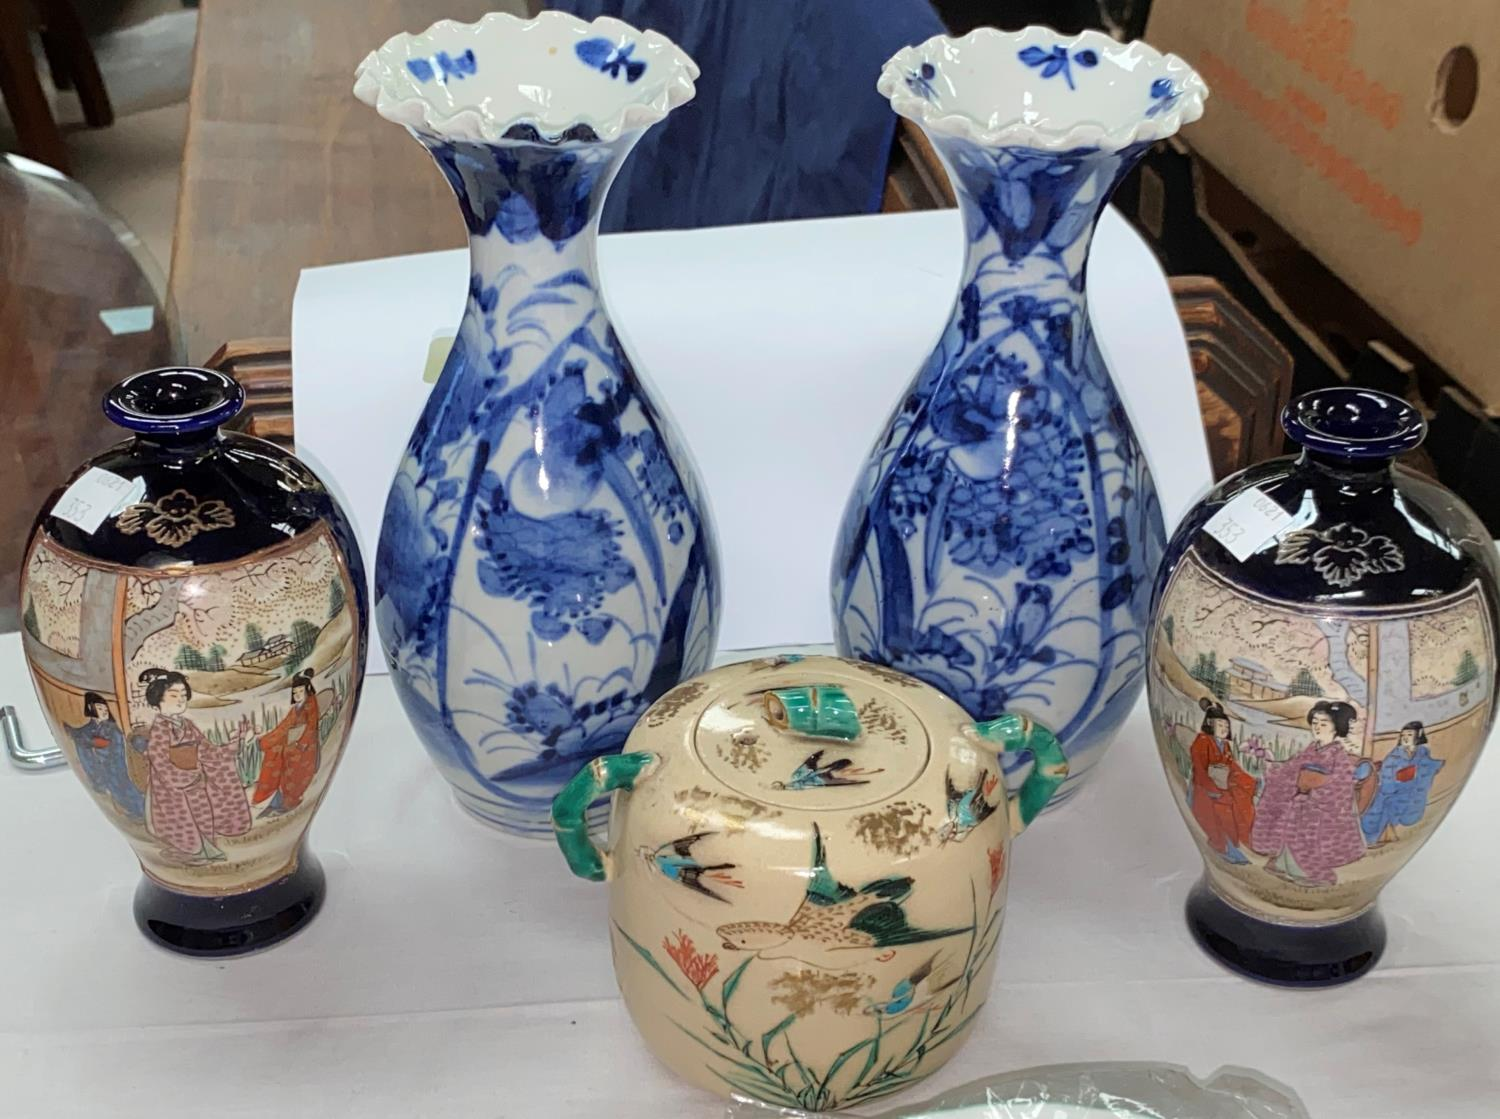 A Japanese pair of Imari vases, 21 cm; a pair of satsuma vases, 15 cm; another piece